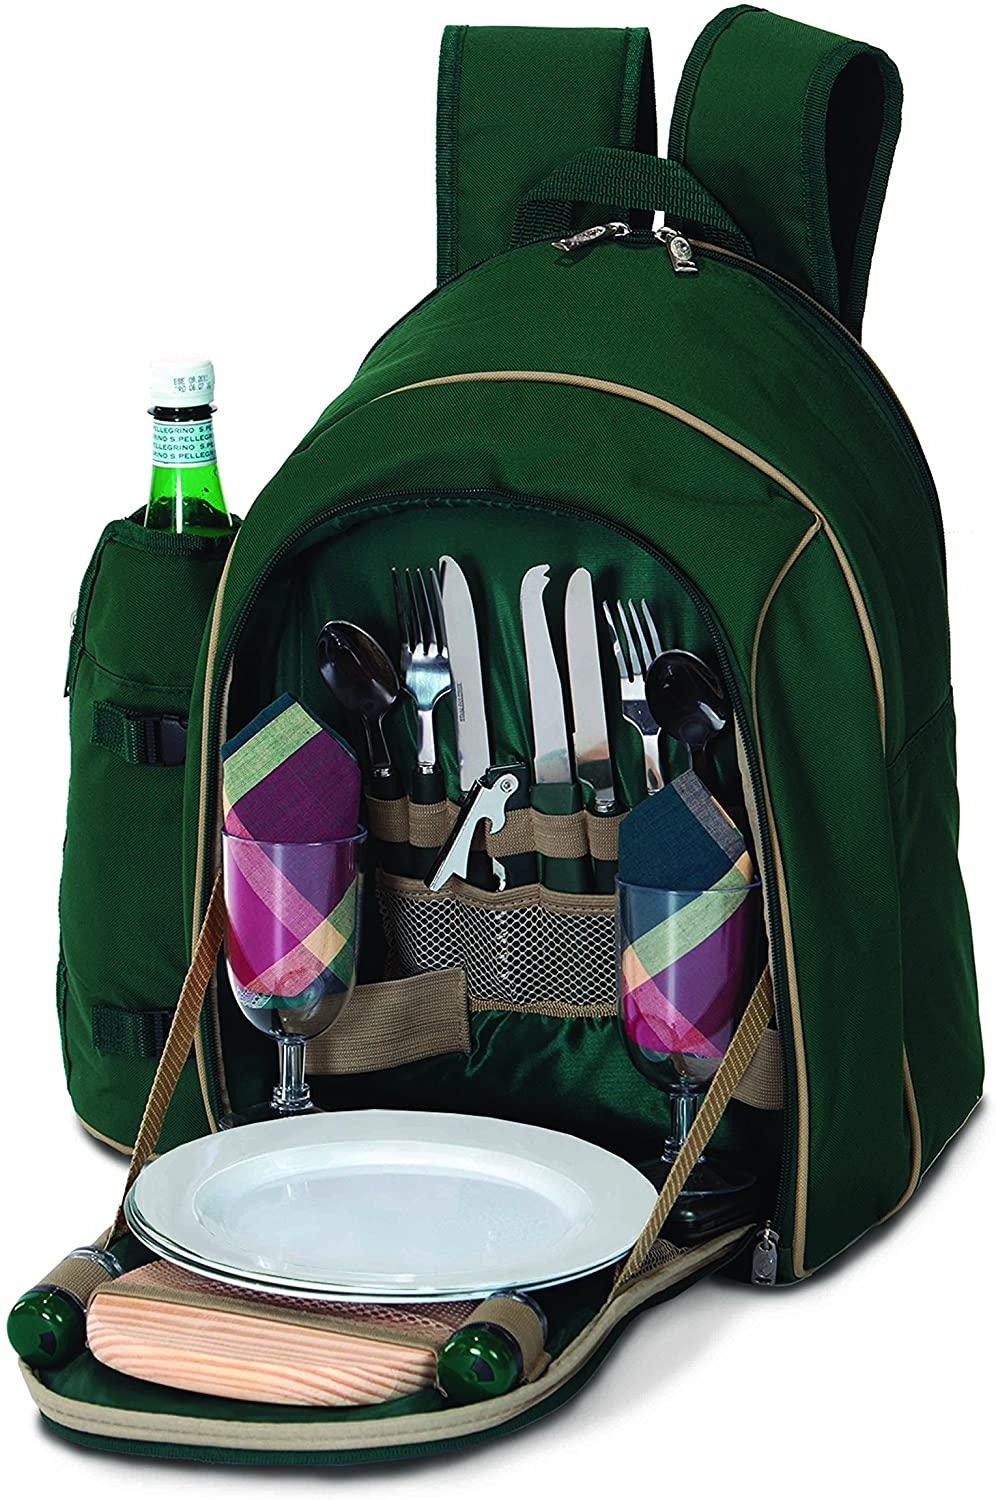 Picnic Plus Wine & Picnic Backpack for 2 with Insulated Food Compartment | RJ Julia Booksellers